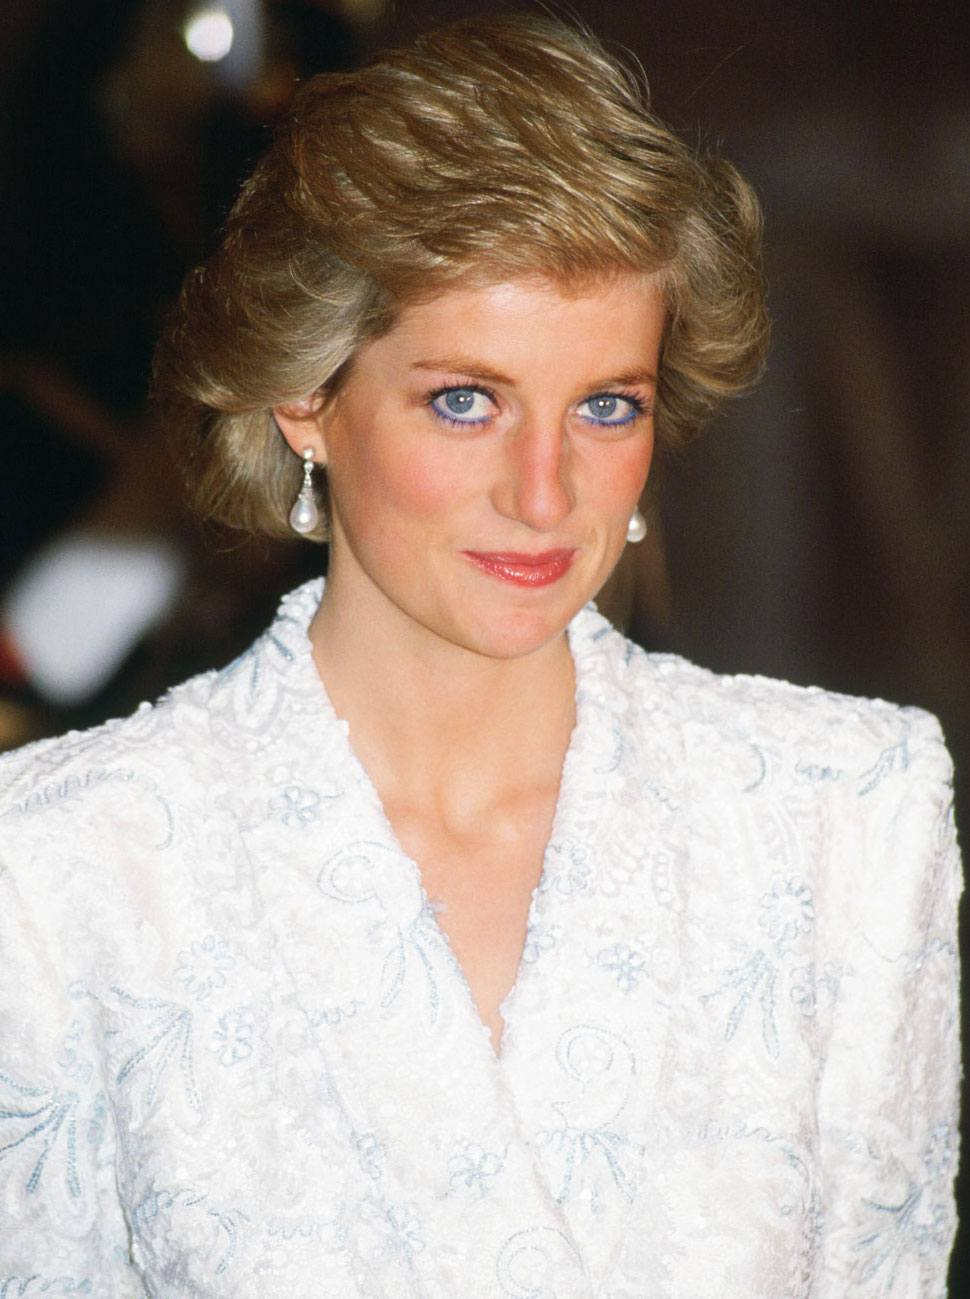 princess diana There Was Almost A Forrest Gump Sequel With Princess Diana And OJ Simpson